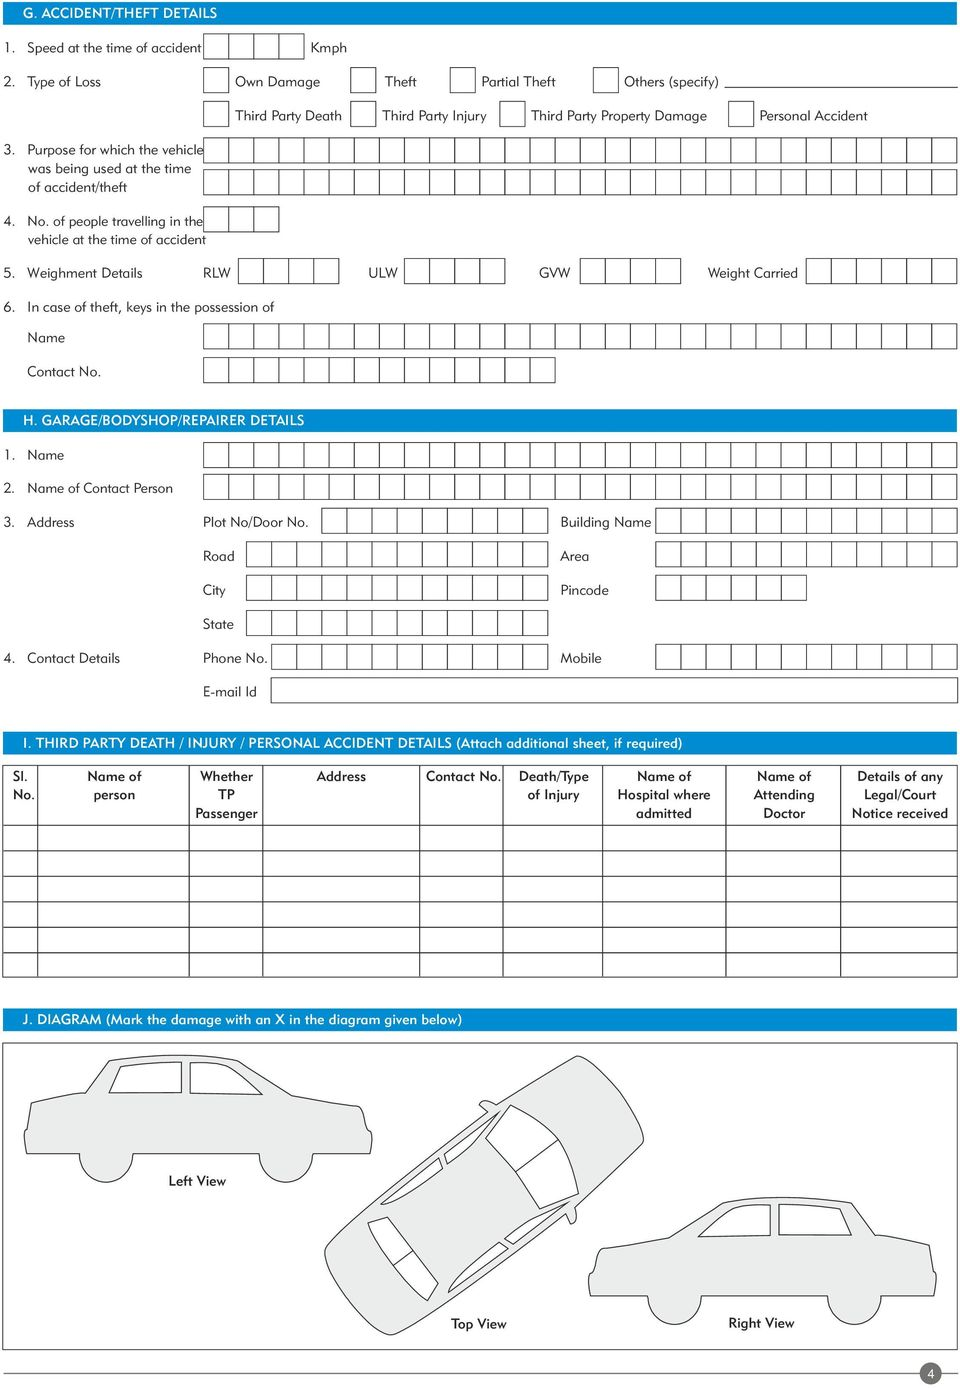 of people travelling in the vehicle at the time of accident Third Party Death Third Party Injury Third Party Property Damage Personal Accident 5. Weighment Details RLW ULW GVW Weight Carried 6.